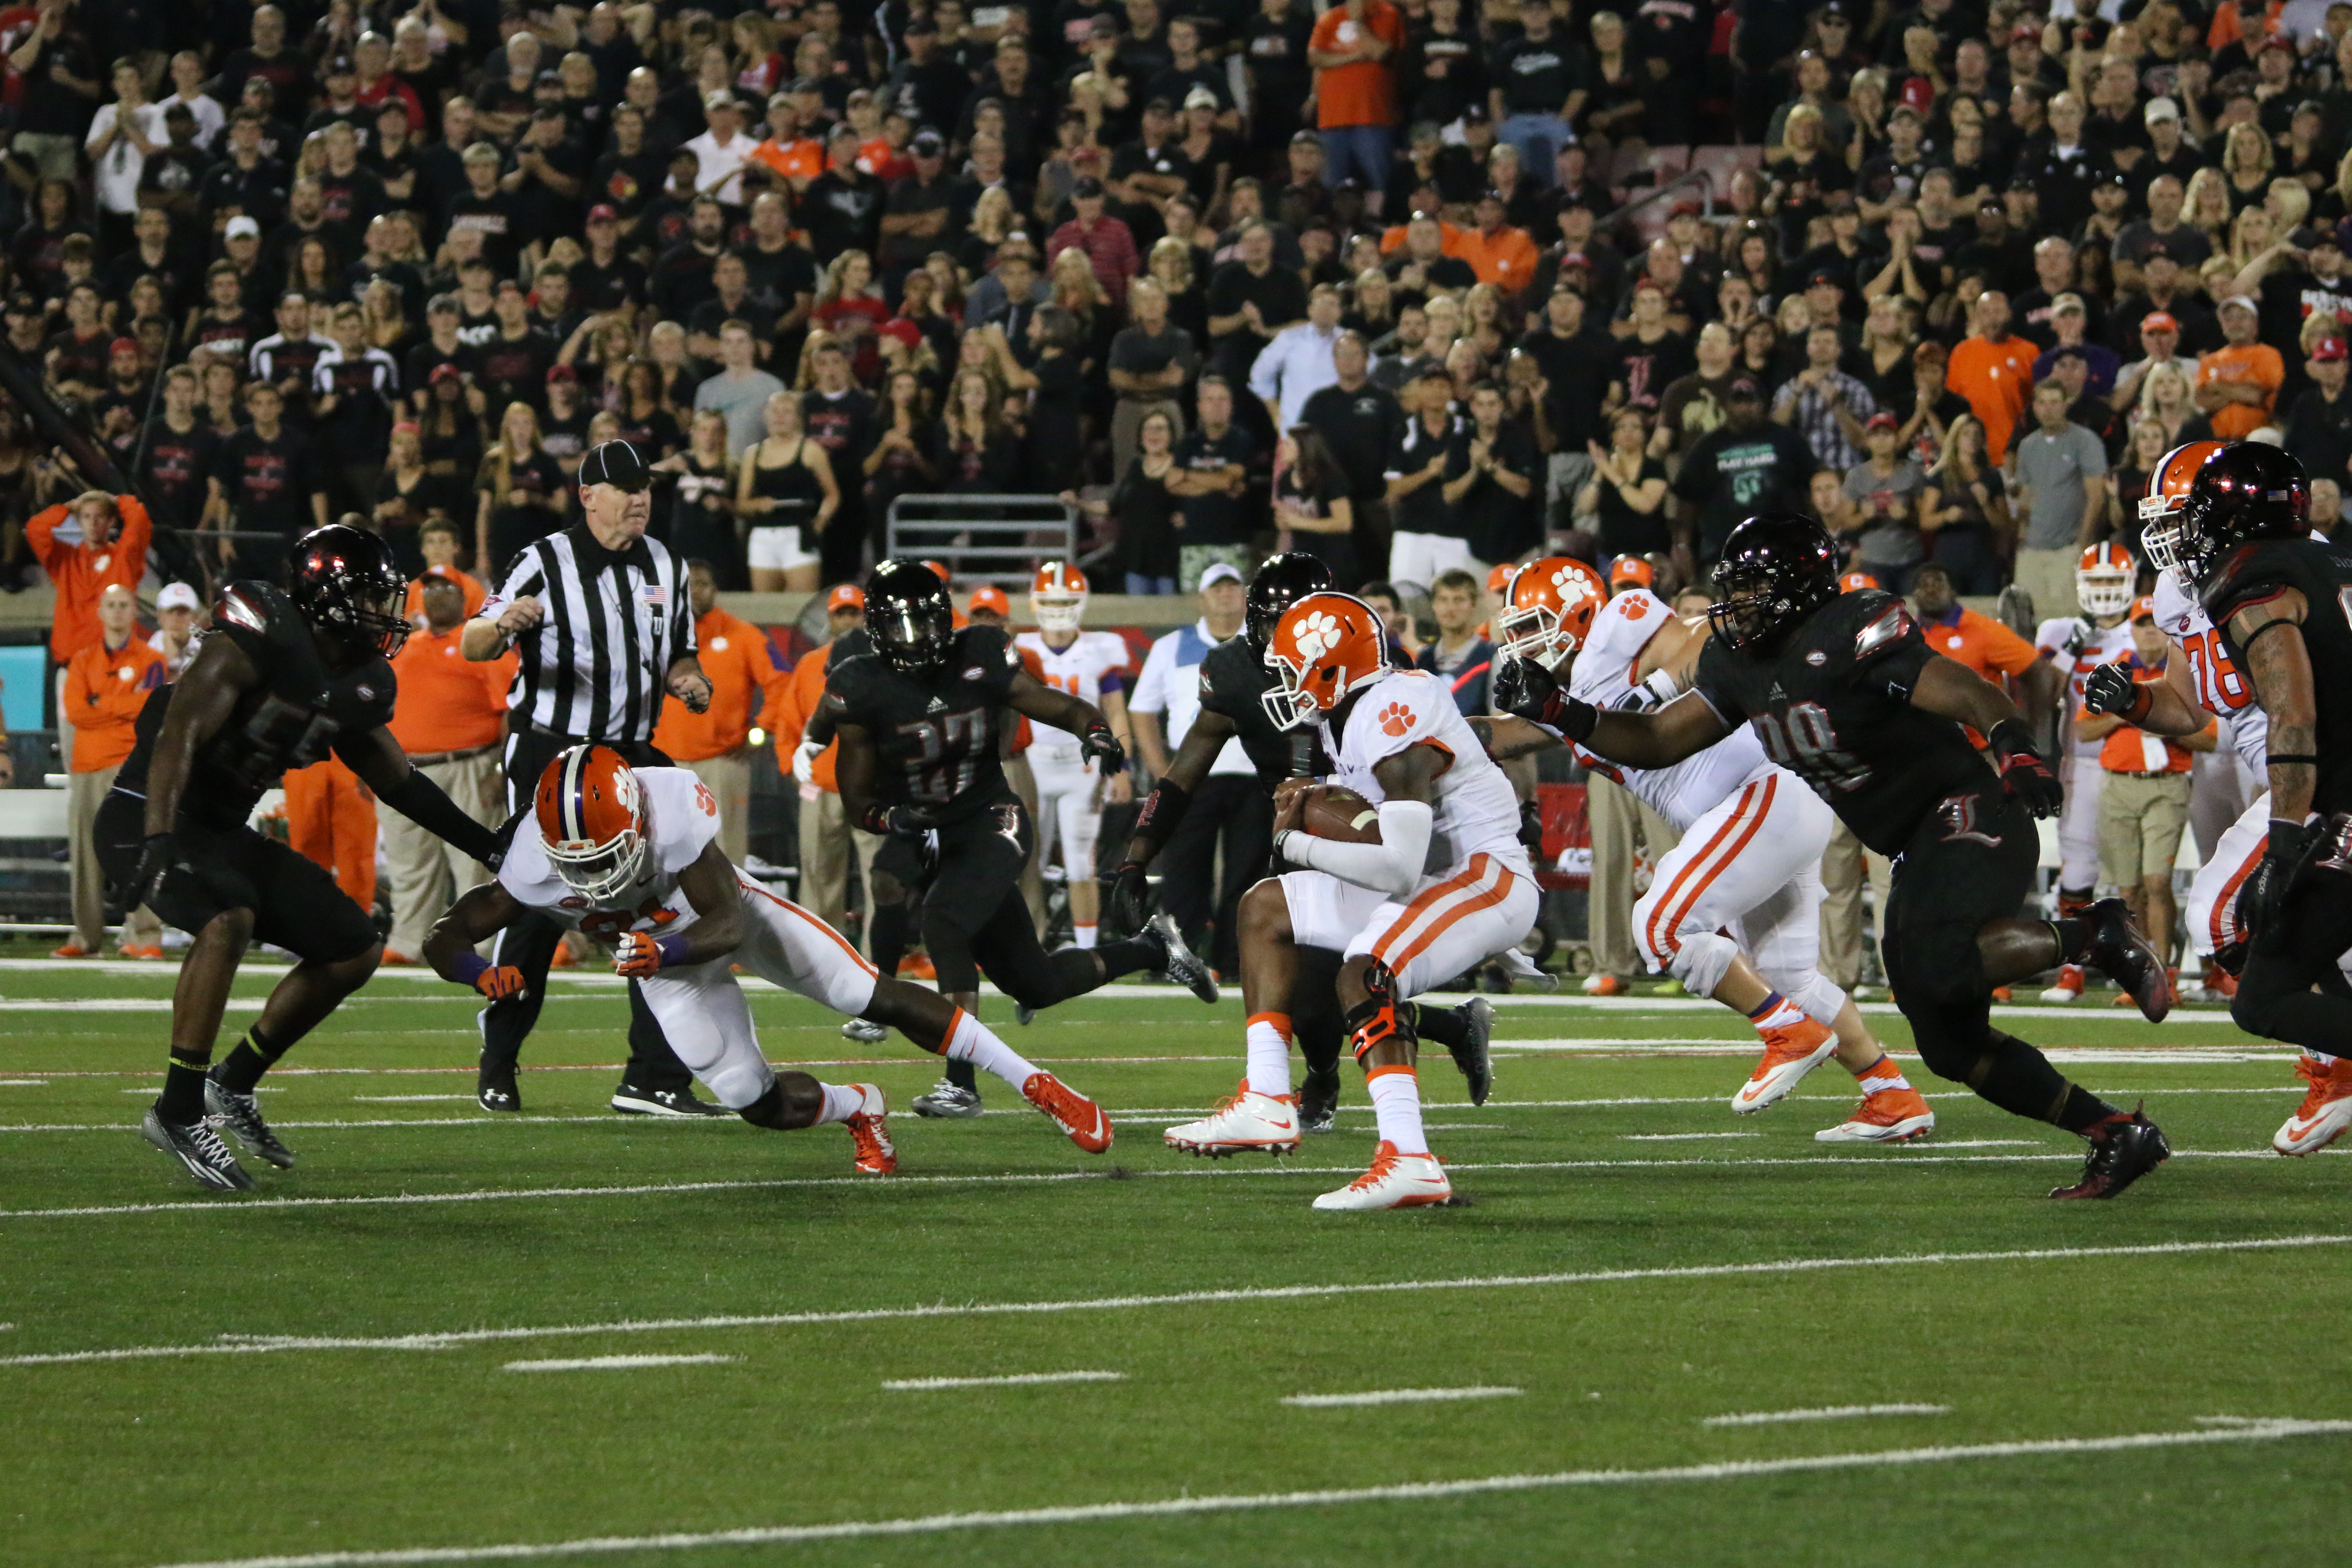 Sheldon Rankins, Jermaine Reve, Keith Kelsey Louisville vs. Clemson 9-17-2015 Photo by William Caudill.